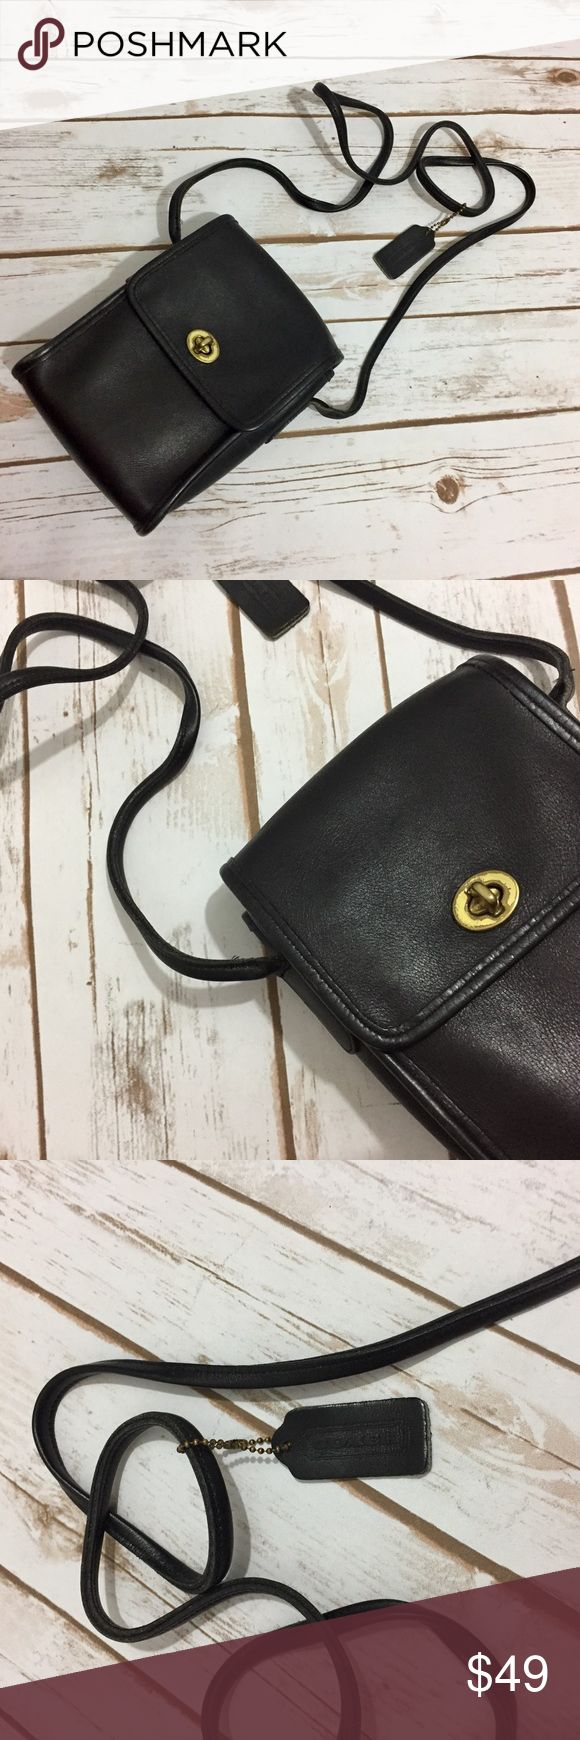 Vintage Coach Legacy Small Black Crossbody Bag. Gorgeous Vintage Coach Legacy Black Small Micro Leather Bag. Perfect as an everyday bag or would be a lovely camera bag. This will pair well with any outfit! In great vintage condition, aside from minor knick on back of bag and tag splitting. Coach Bags Crossbody Bags